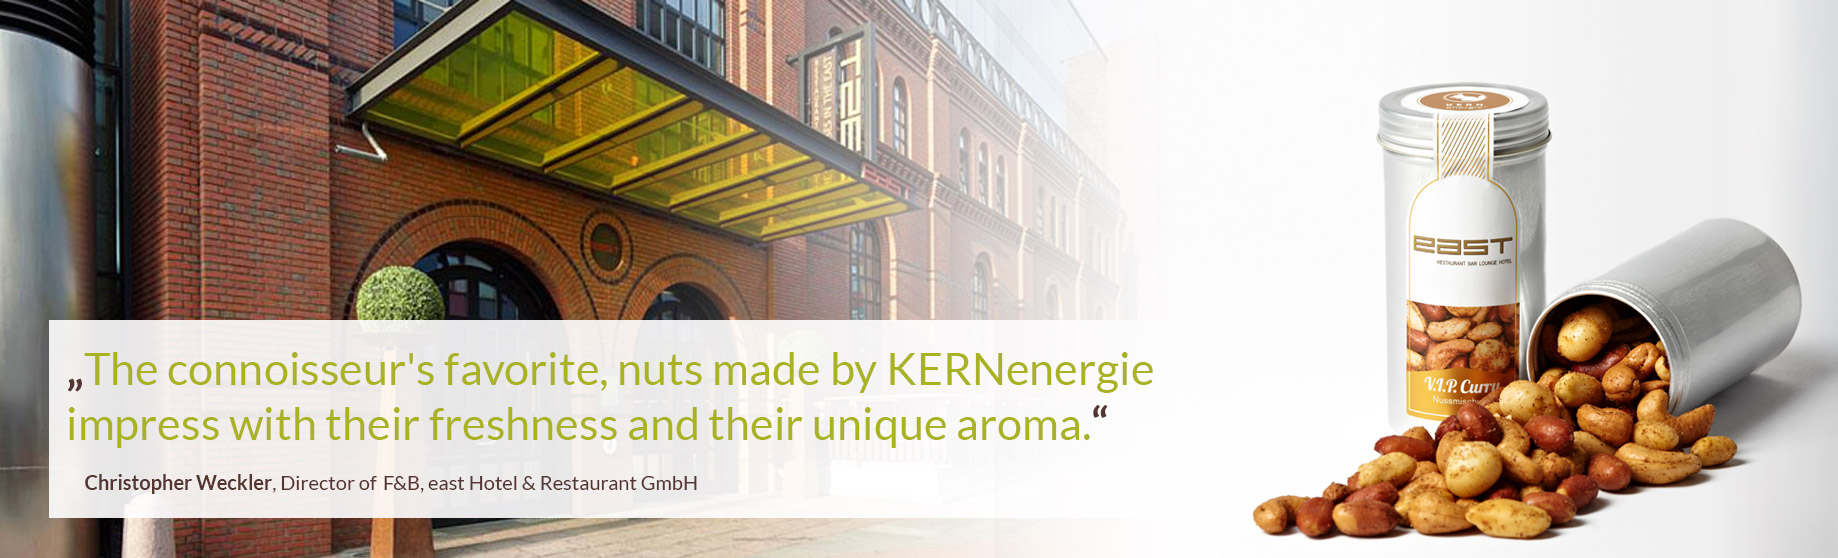 KERNenergie for Companies